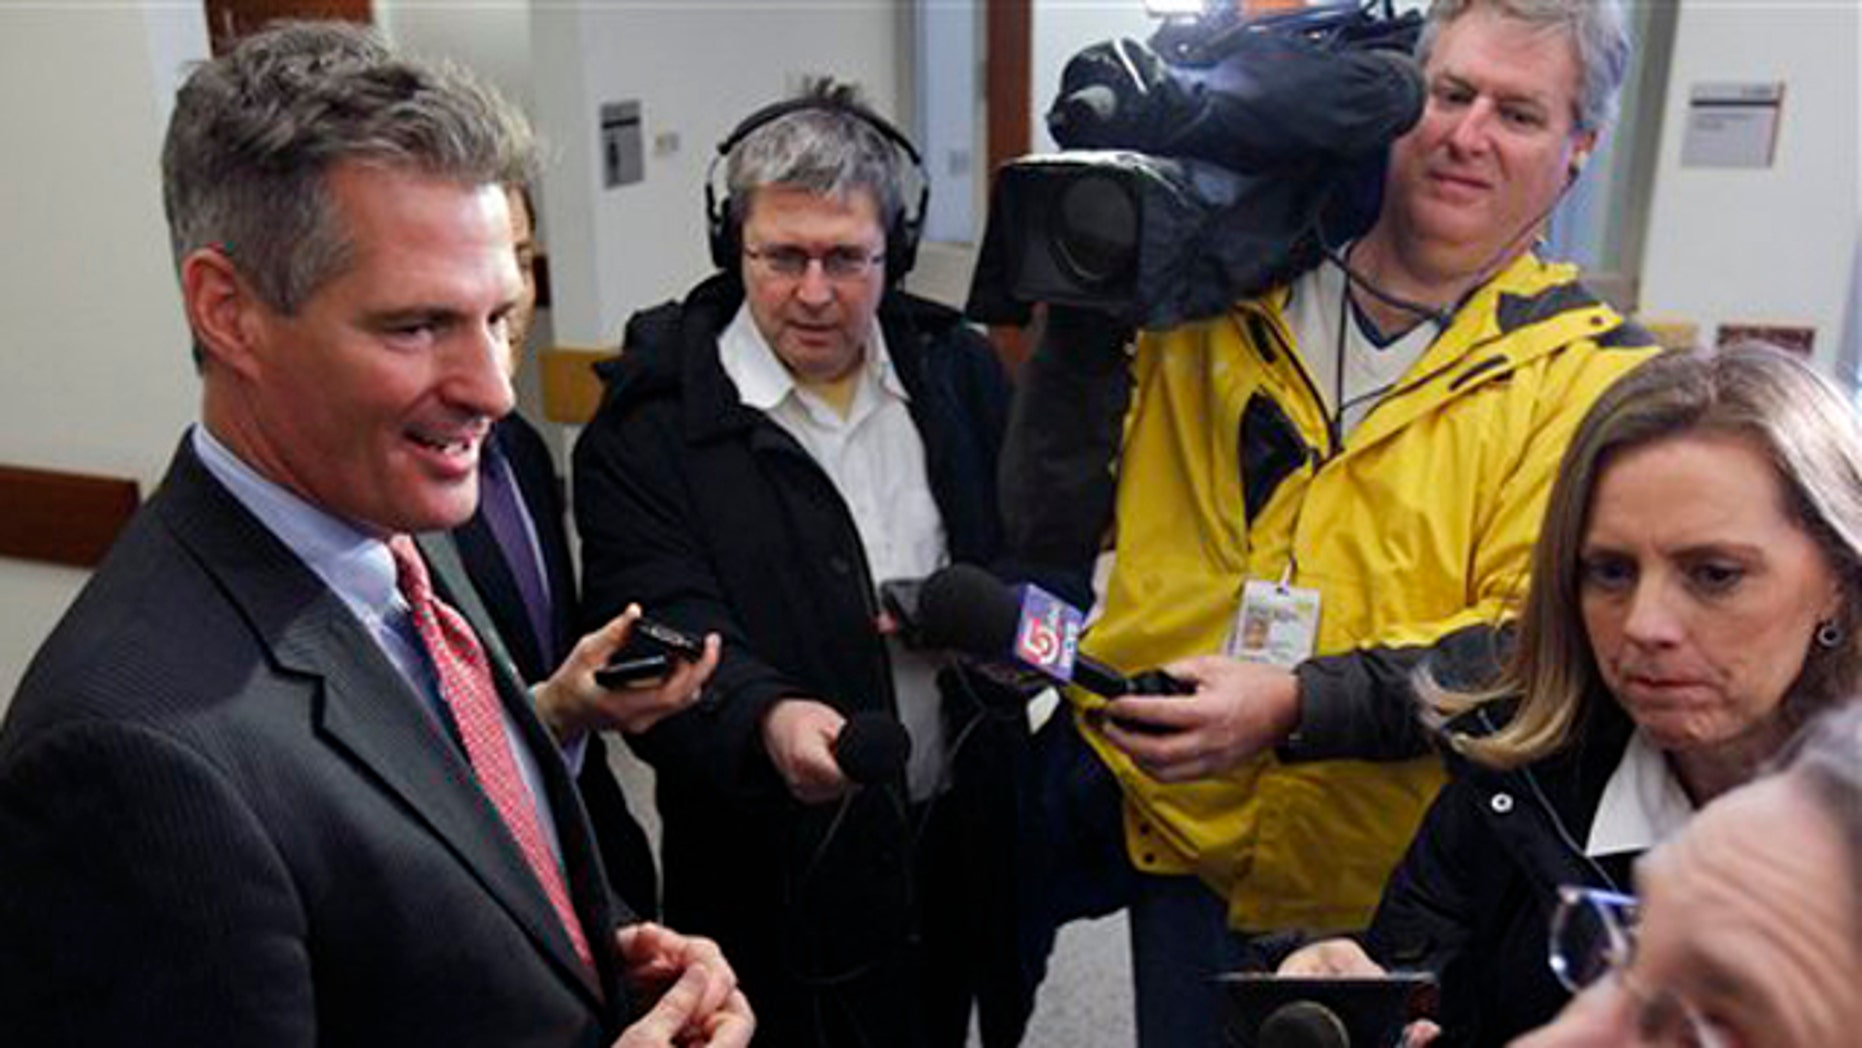 FILE: Then-Sen. Scott Brown talks with members of the media during a tour of Boston Police headquarters in Boston.